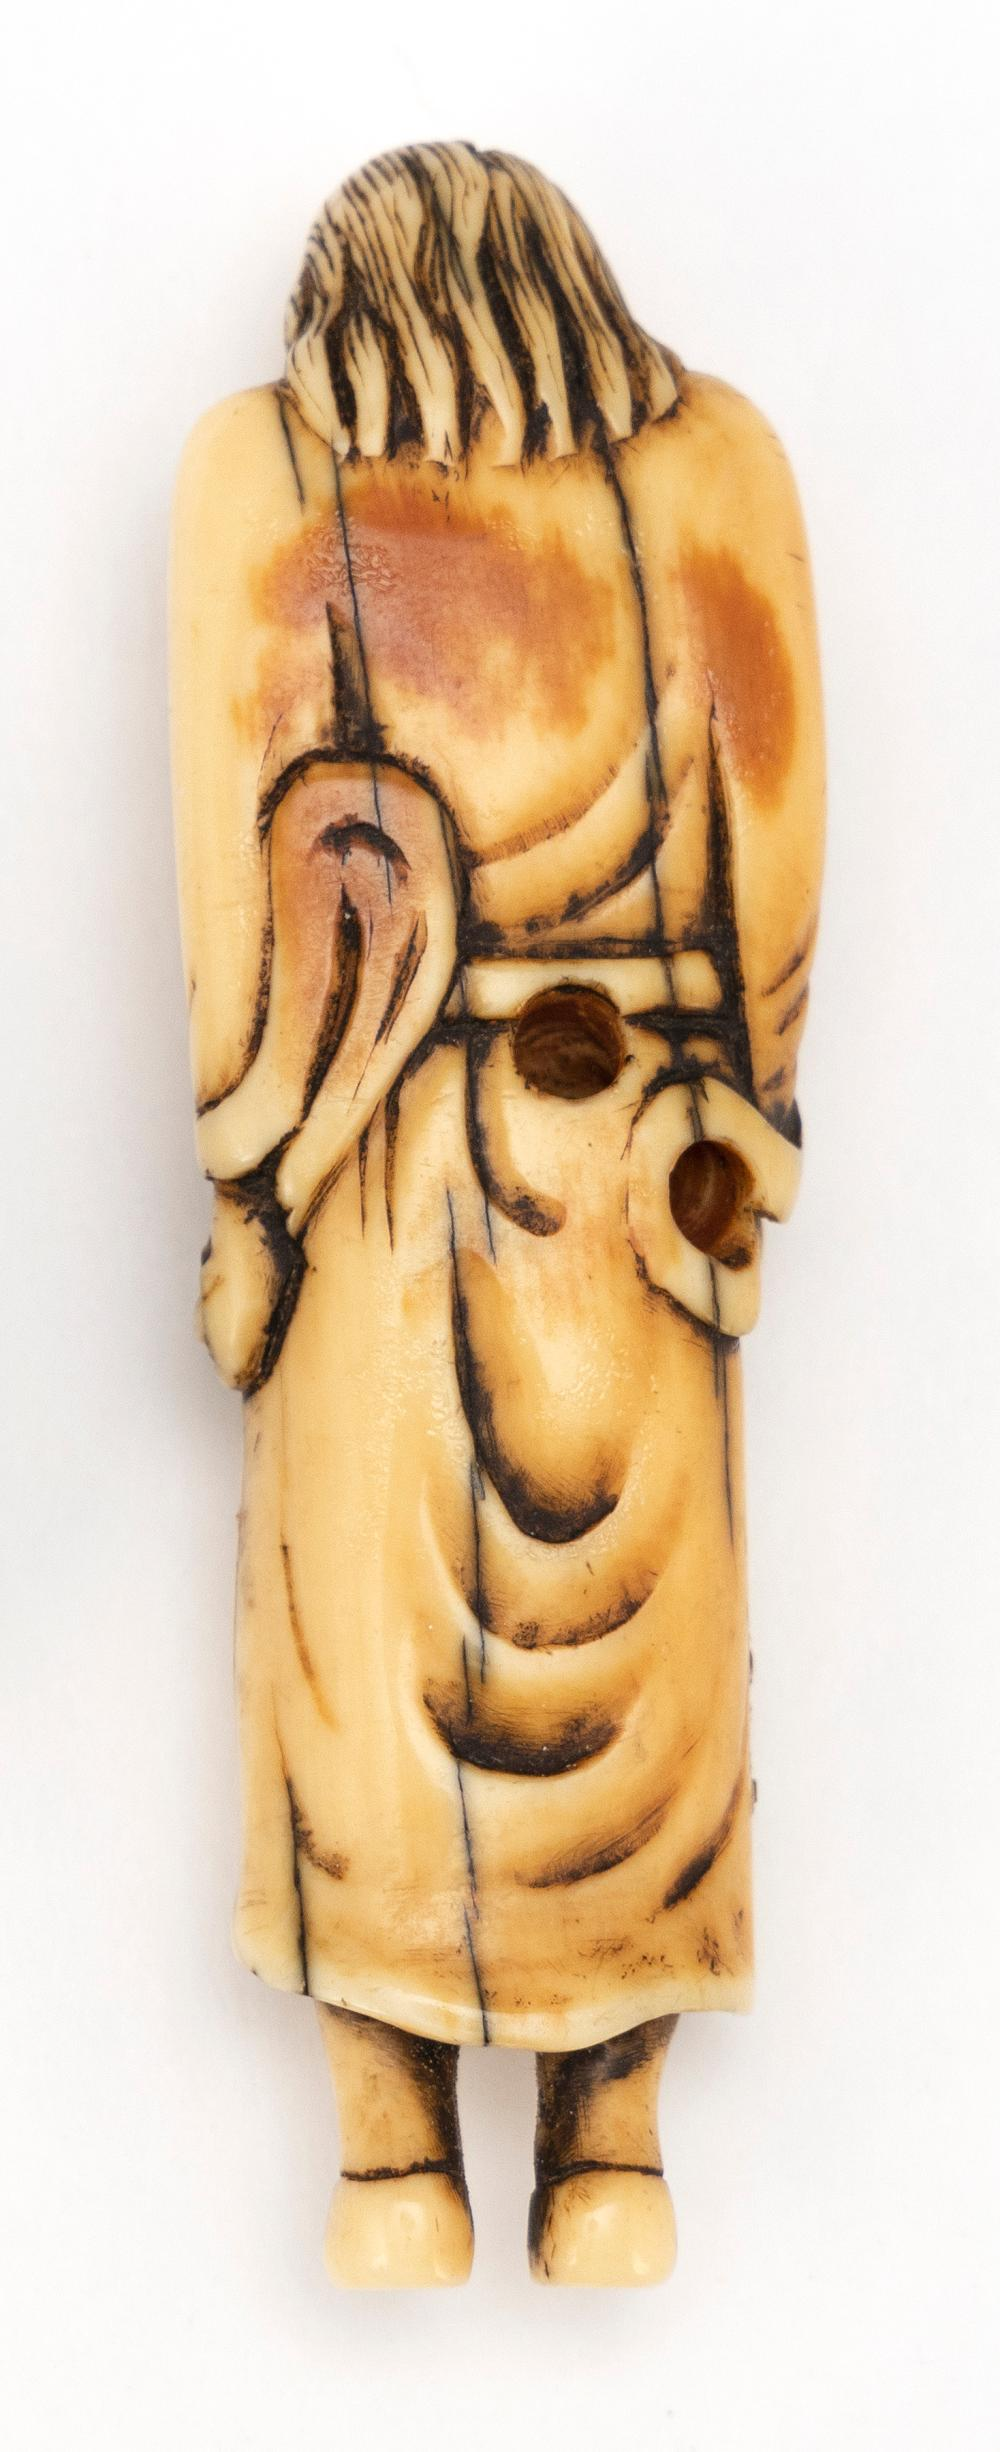 IVORY NETSUKE In the form of a standing sennin. Height 3.8